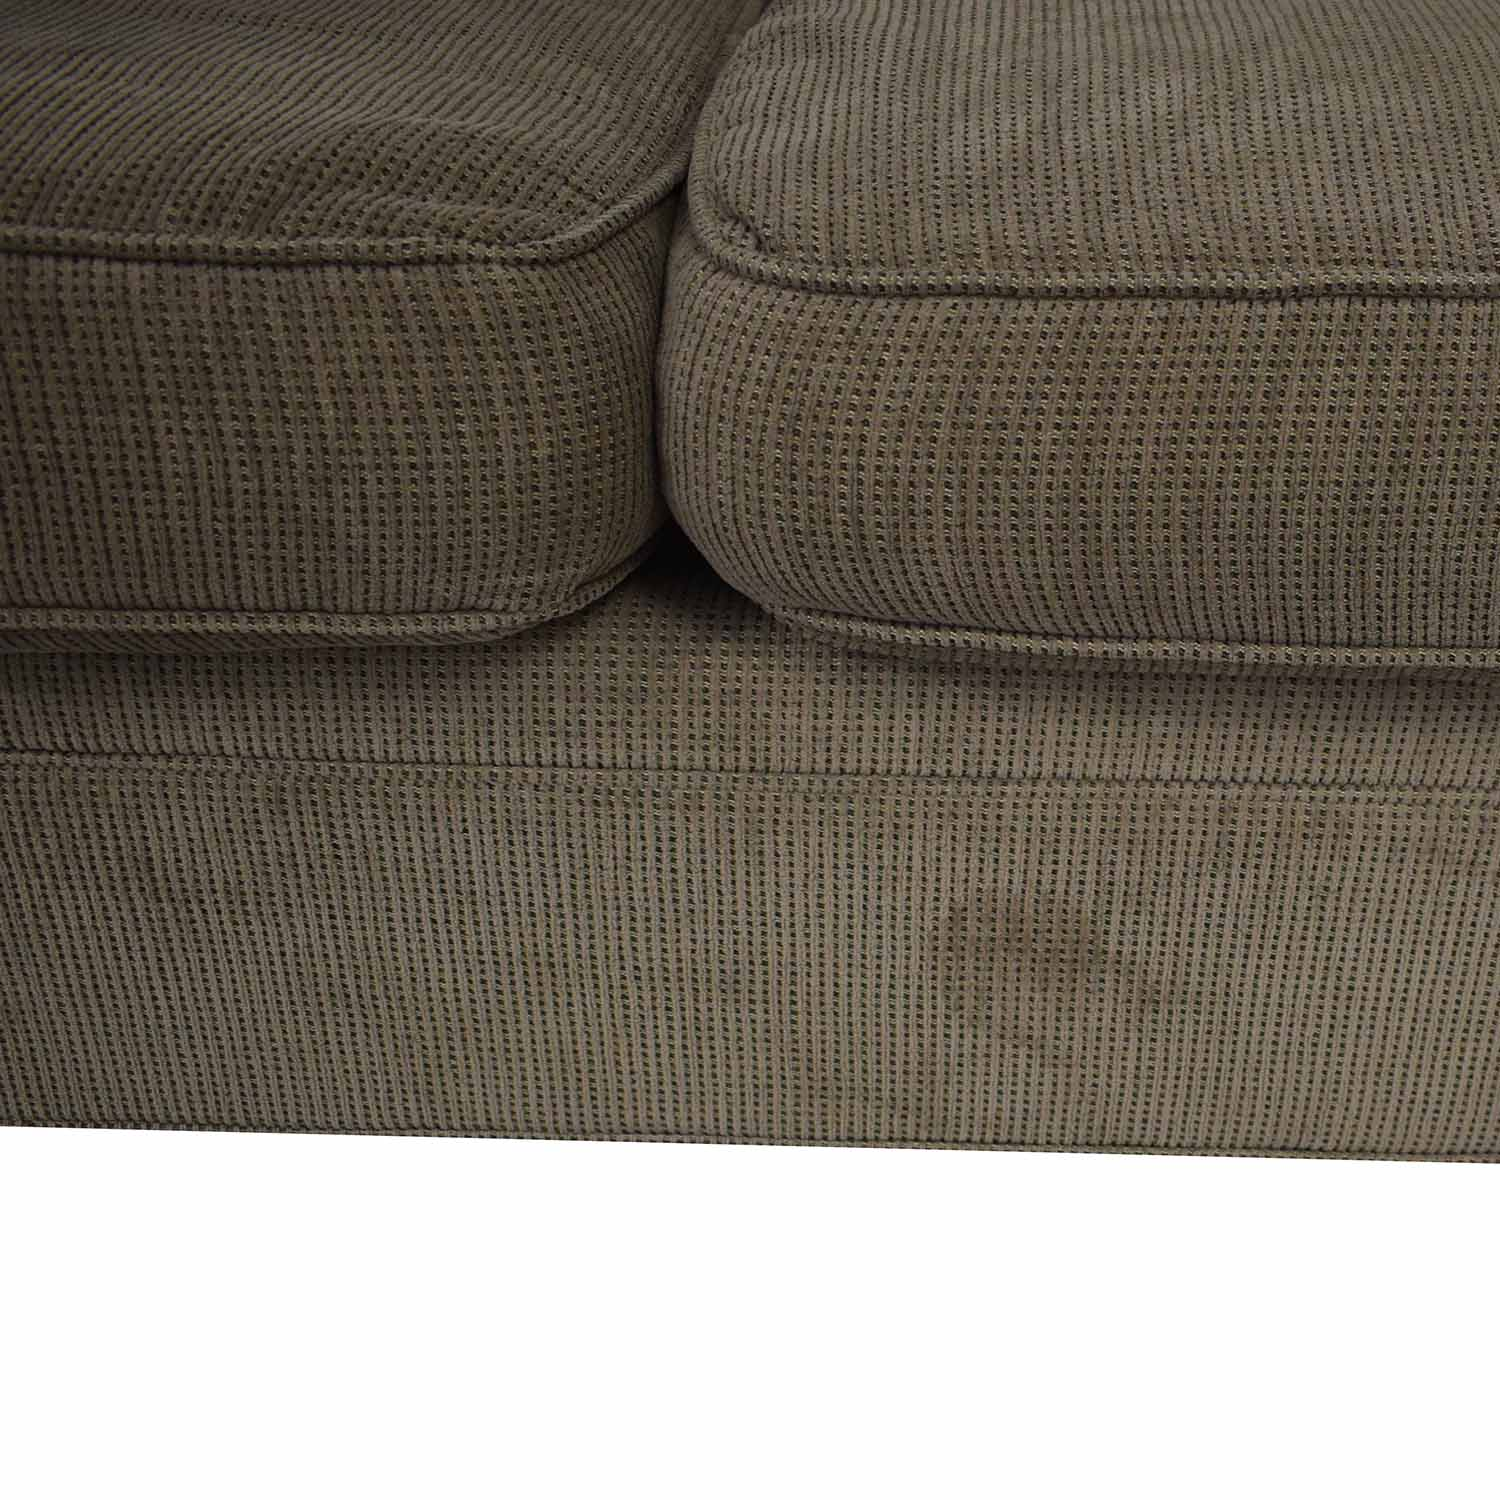 Crate & Barrel 3-Seat Rolled Arm Sofa / Sofas